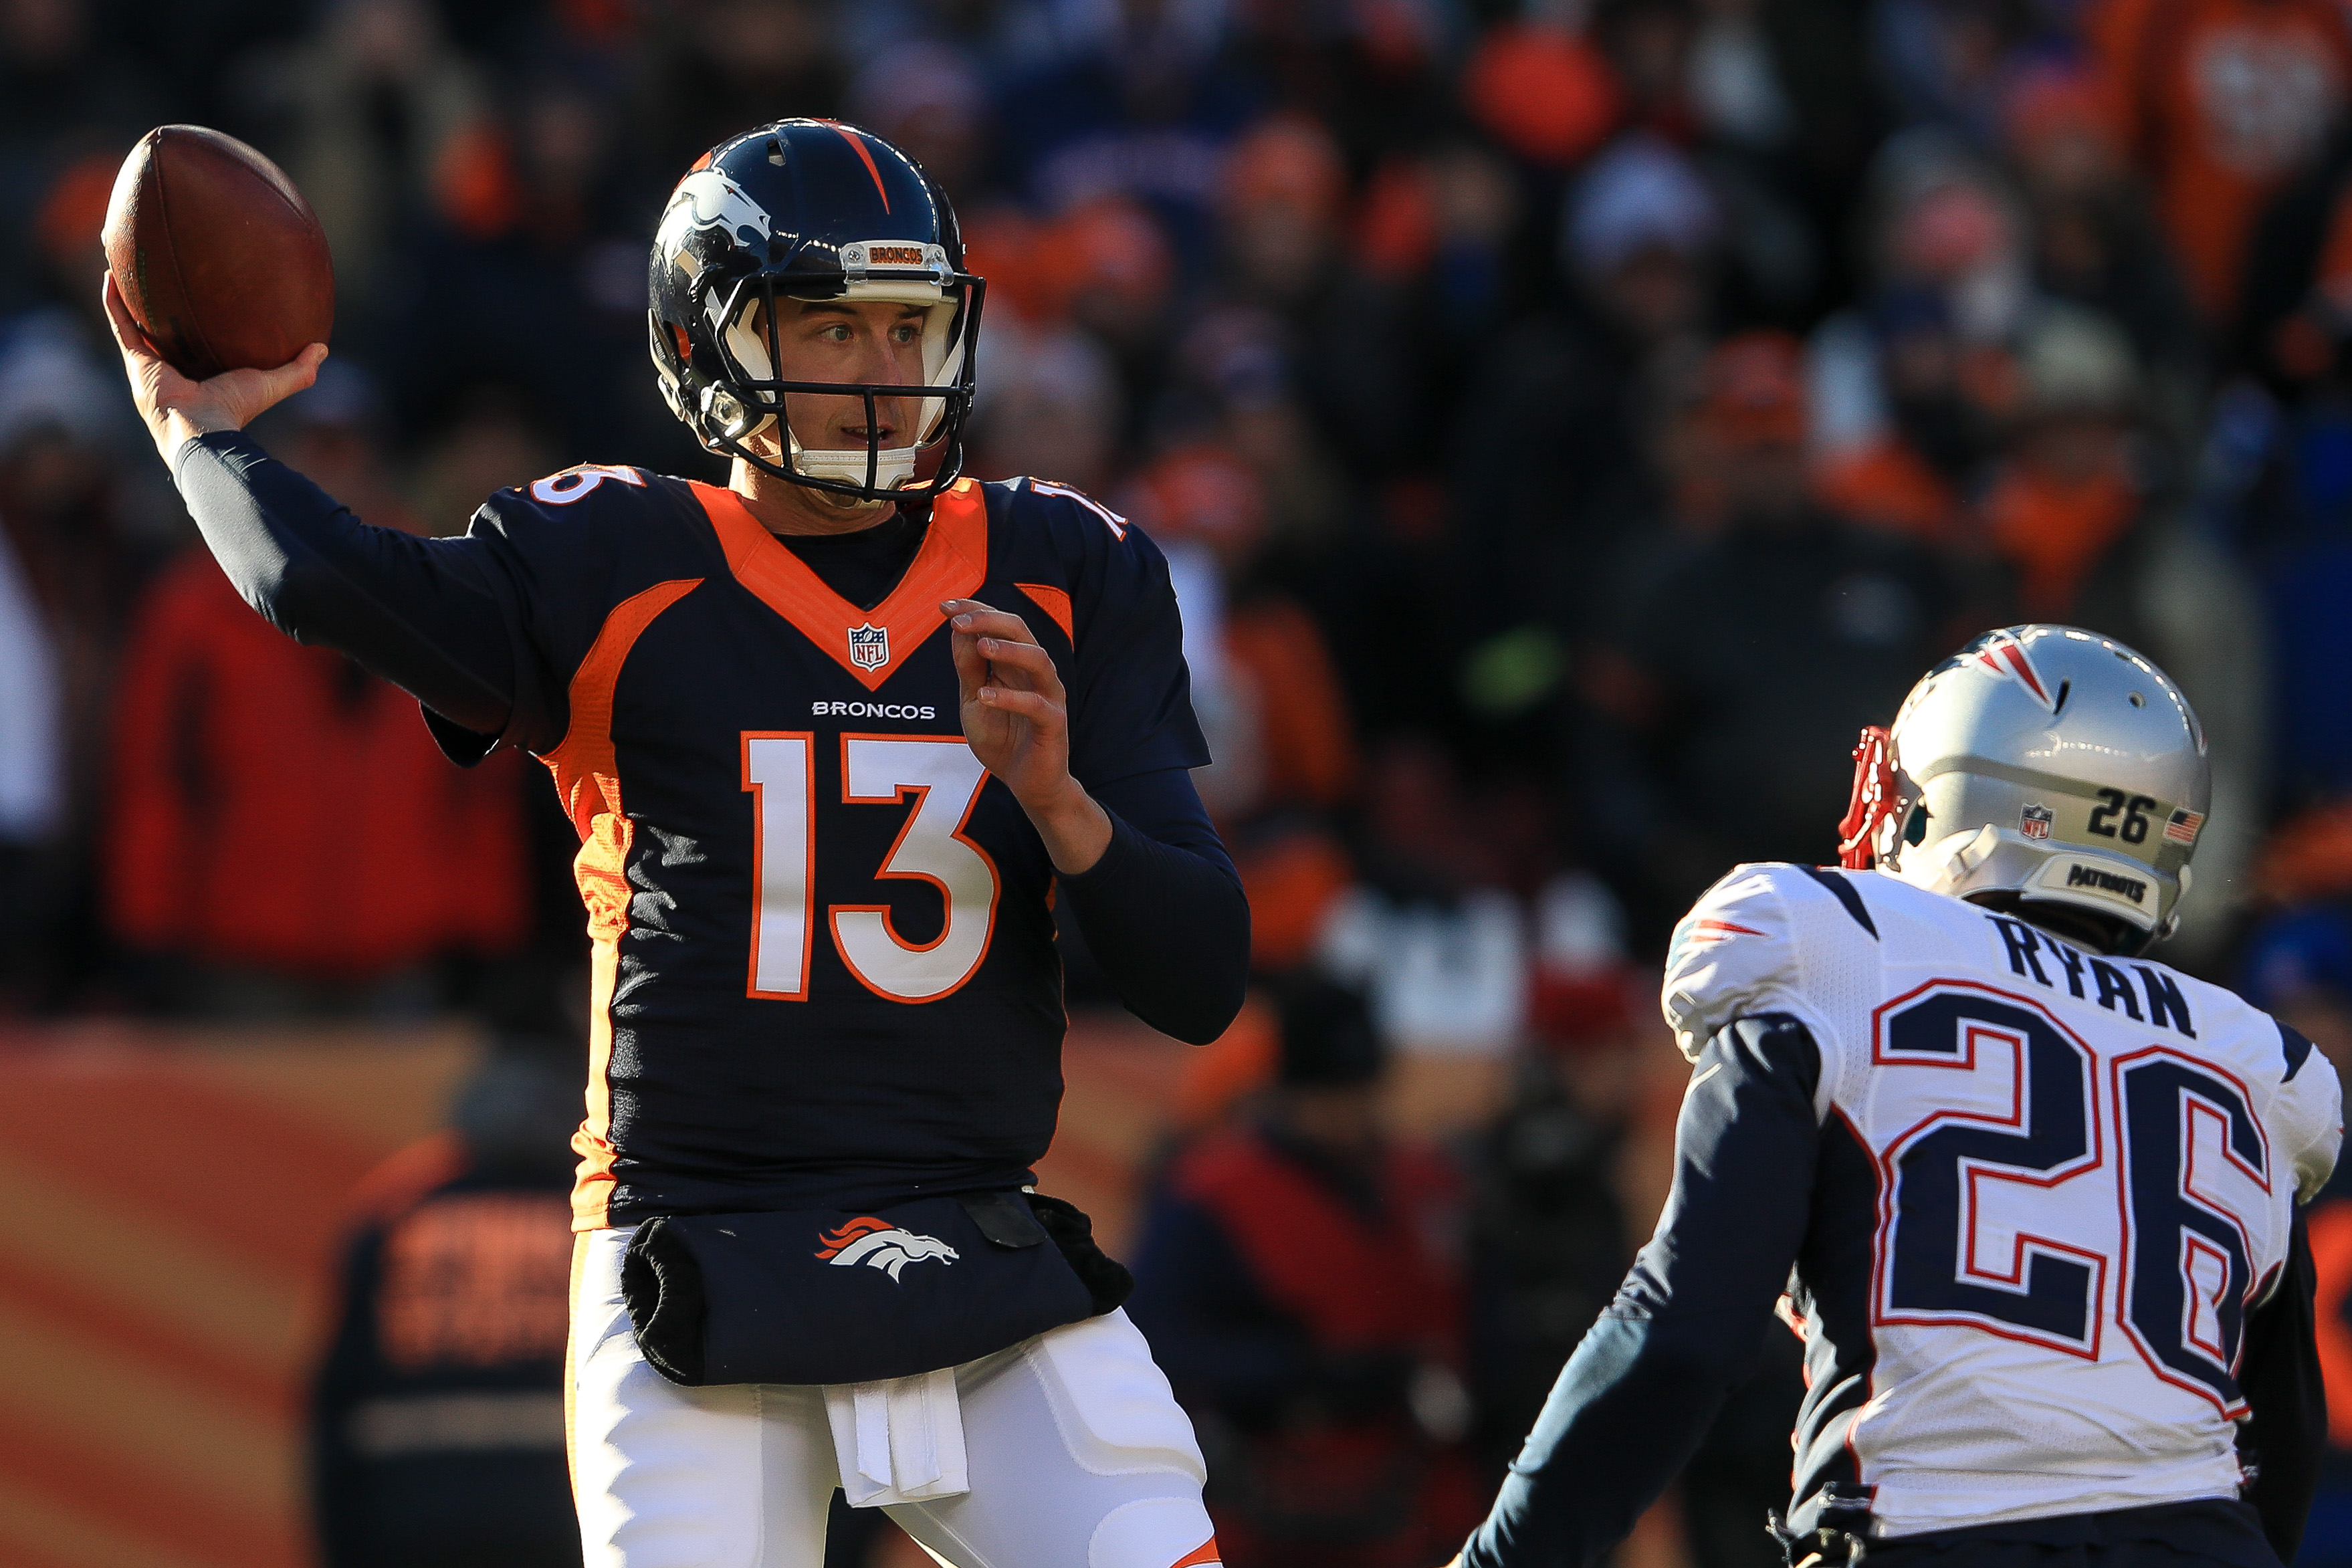 Quarterback Trevor Siemian #13 of the Denver Broncos passes against the New England Patriots in the first quarter of a game at Sports Authority Field at Mile High on December 18, 2016 in Denver, Colorado. (Photo by Sean M. Haffey/Getty Images)